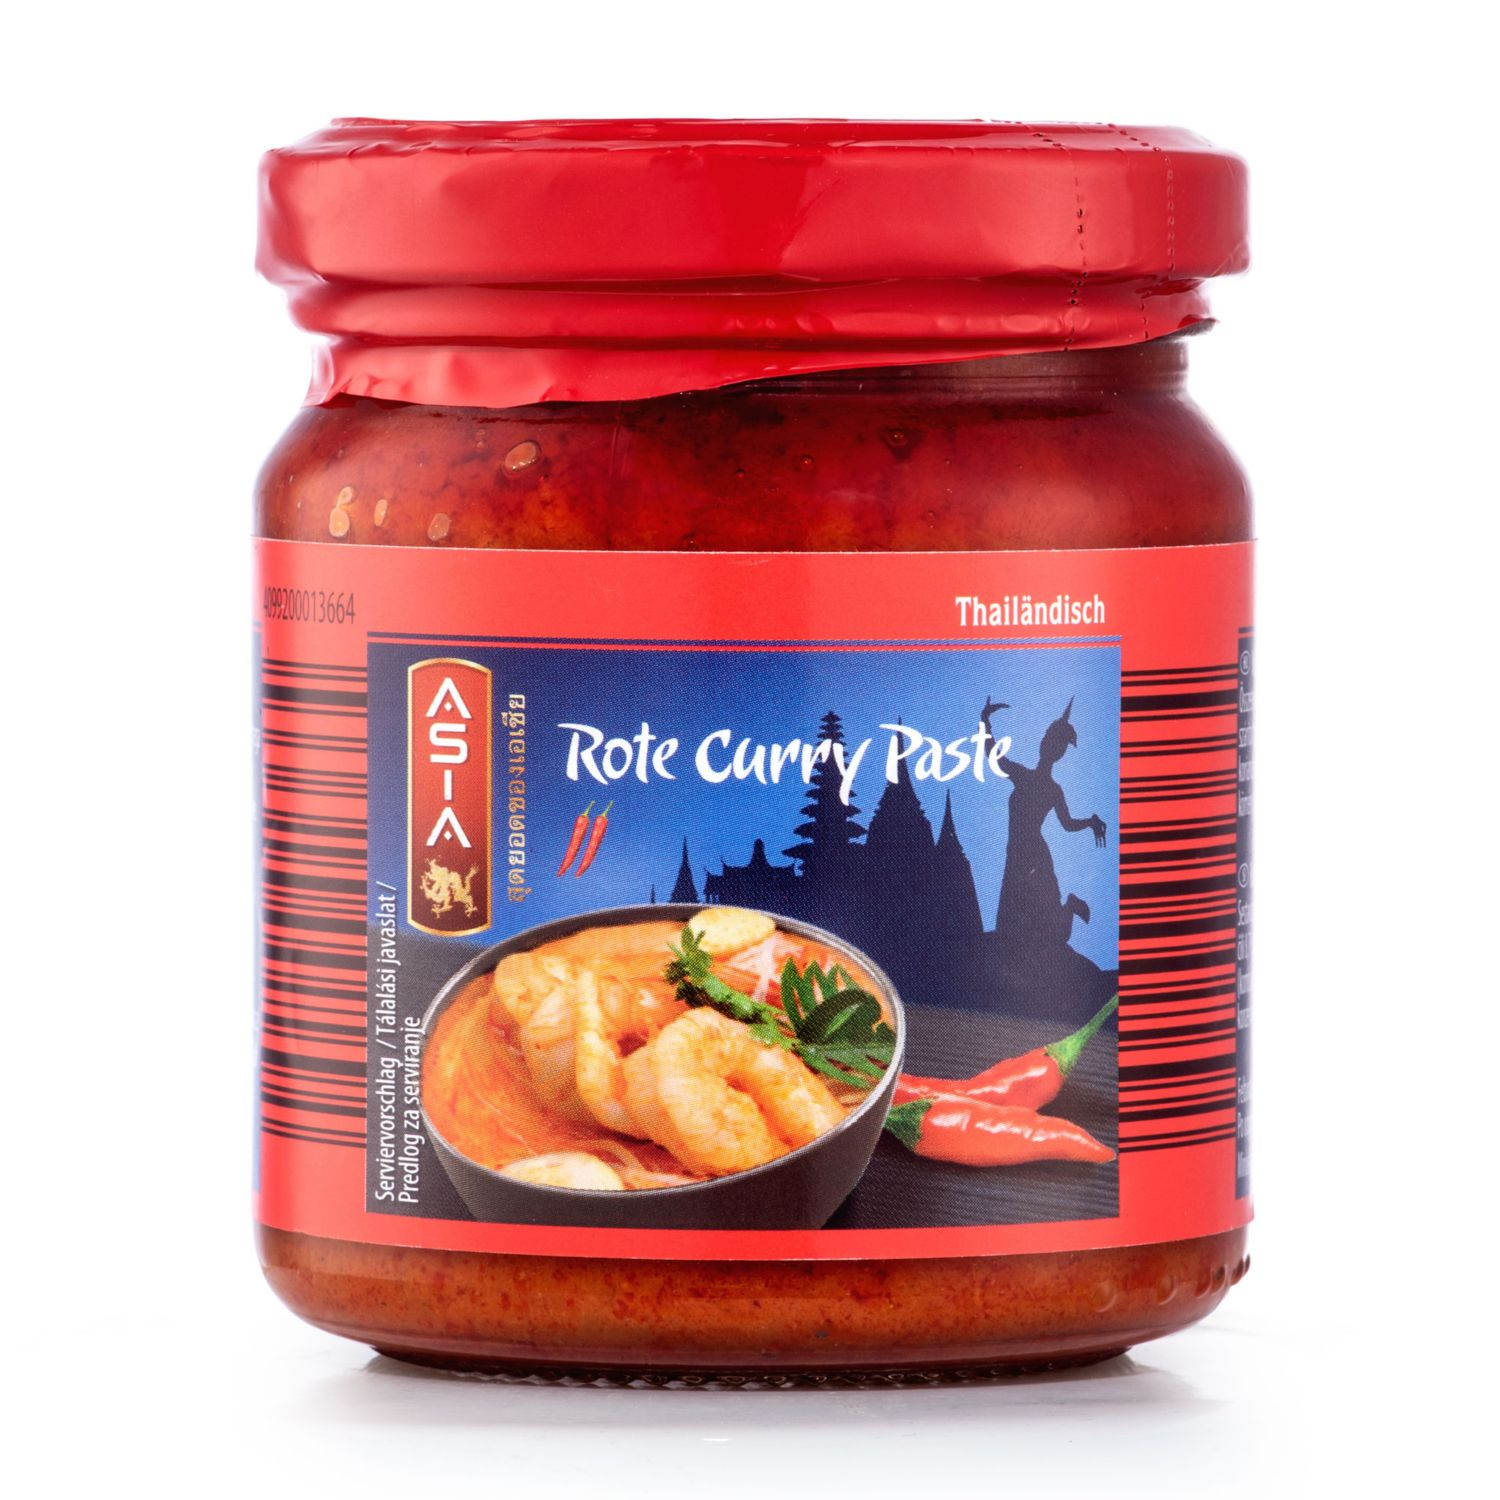 ASIA Curry Paste, Rot